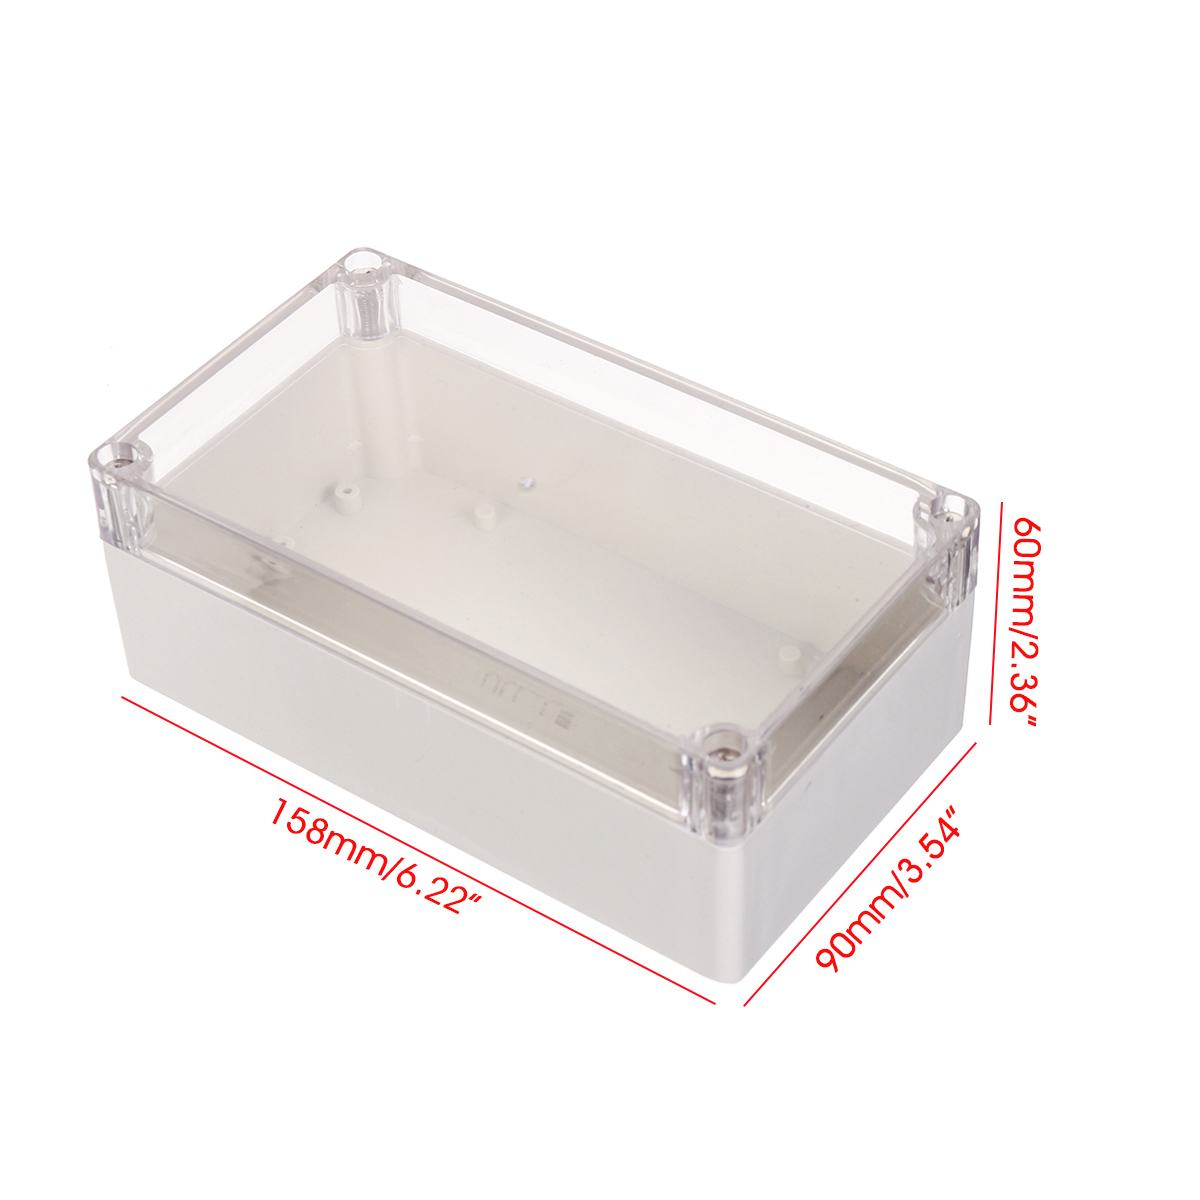 158*90*60mm Plastic Electronic Box Case Project Box Enclosure Waterproof